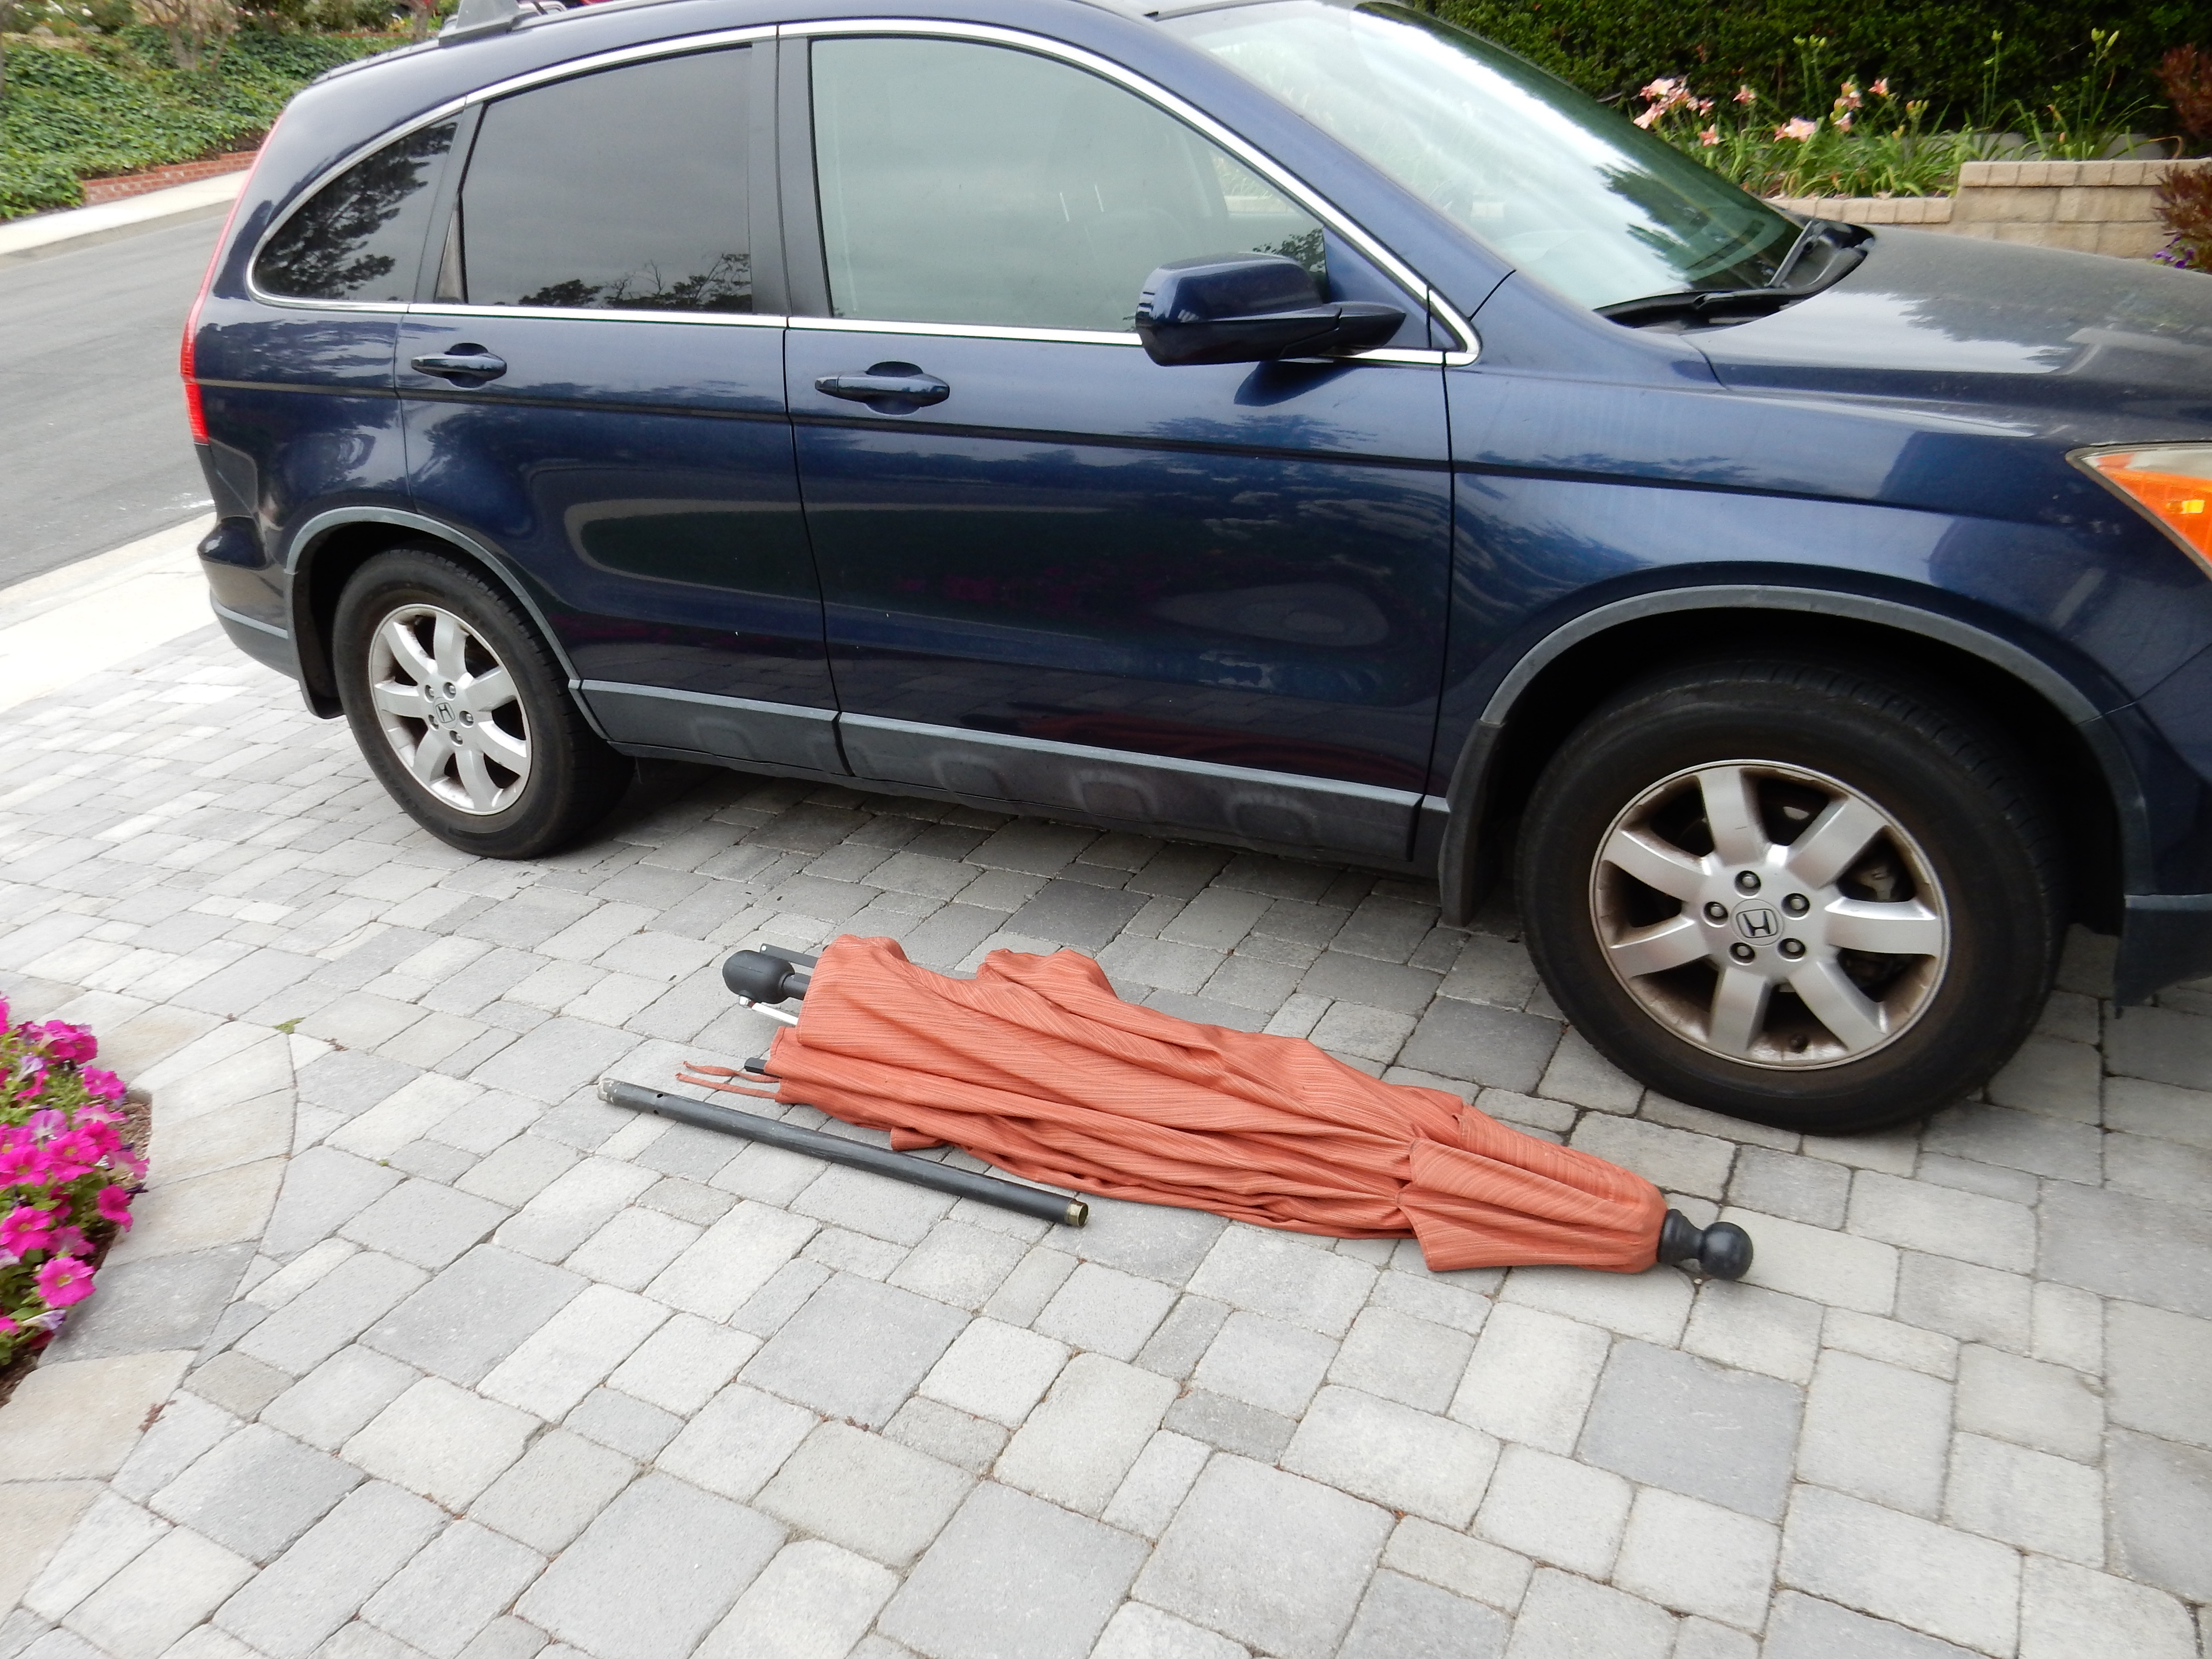 Patio Umbrella Repair S And Information Resource For